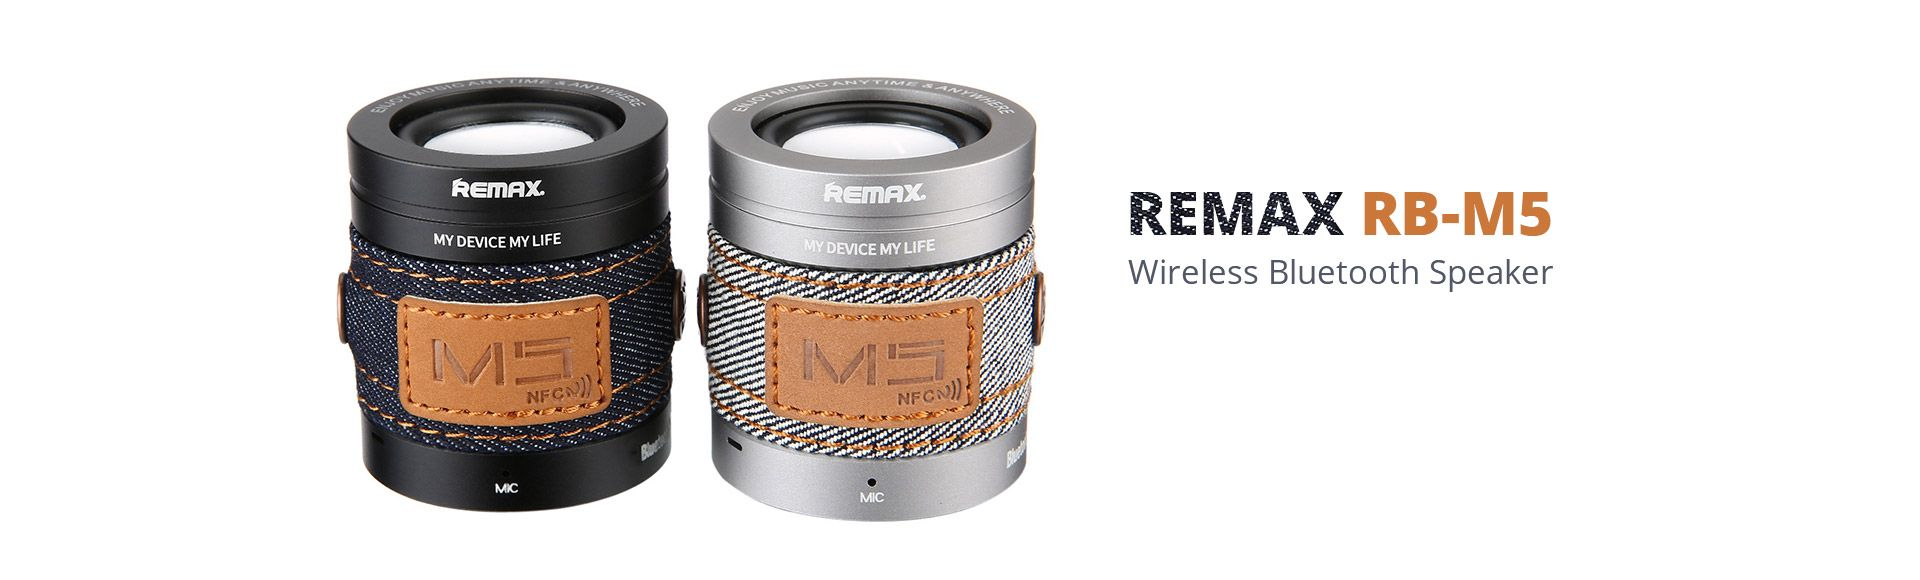 Remax M5 Bluetooth Speaker  - Wireless Portable Speaker NFC Function HiFi Stereo Hands Free MIC Calls for Mobile Phone